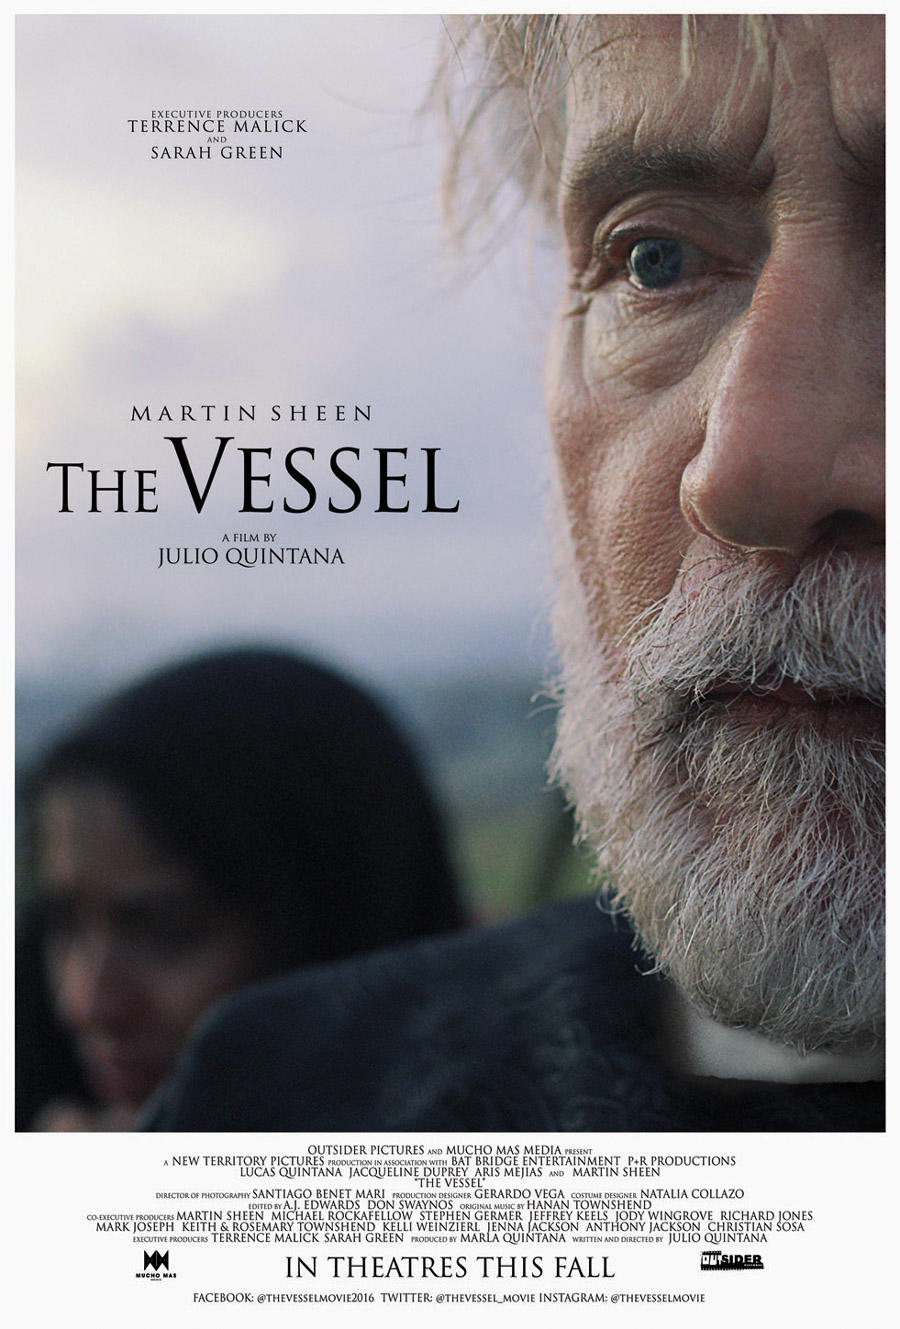 The Vessel poster art